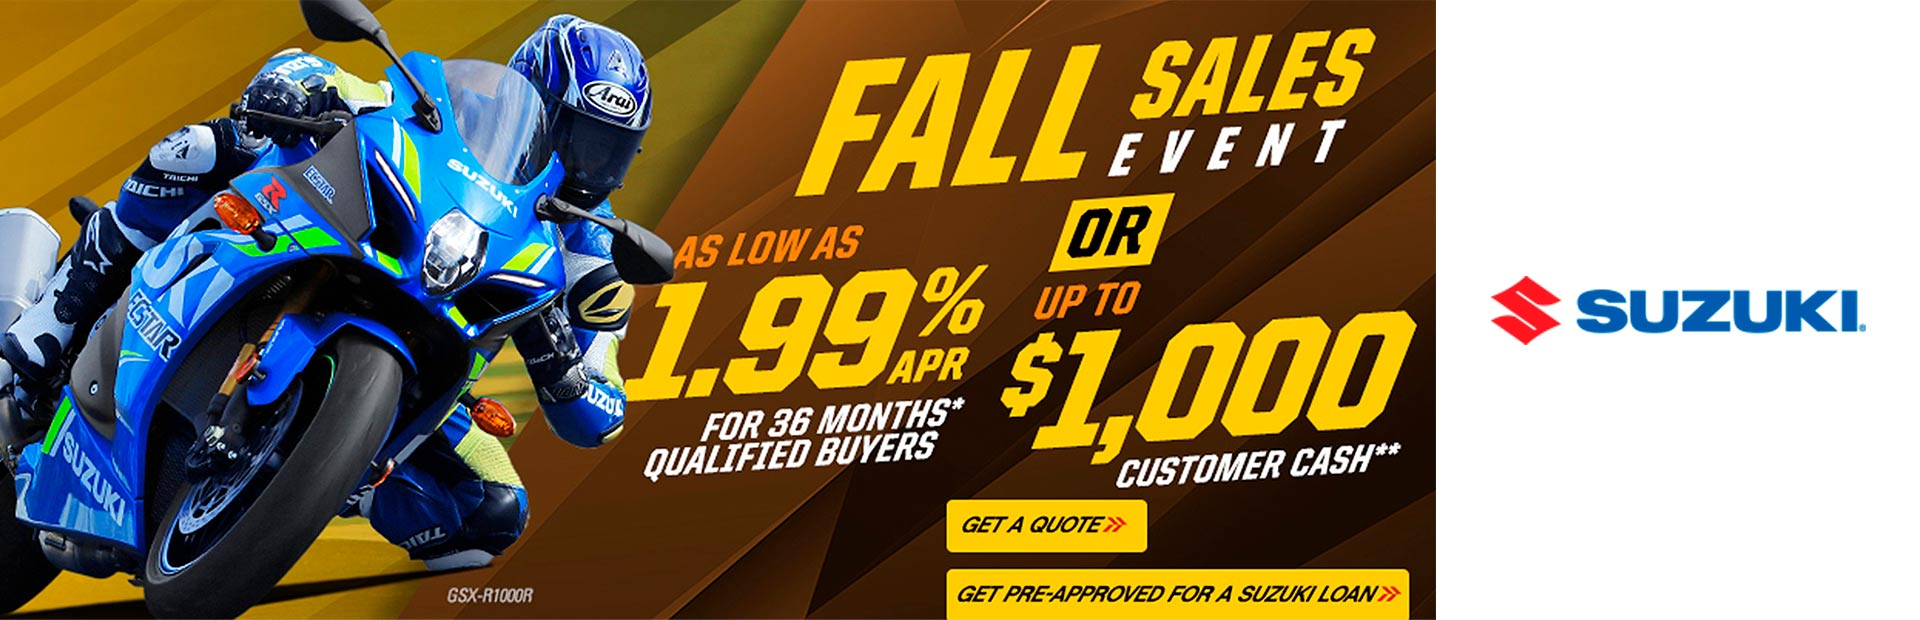 Suzuki: FALL SALES EVENT